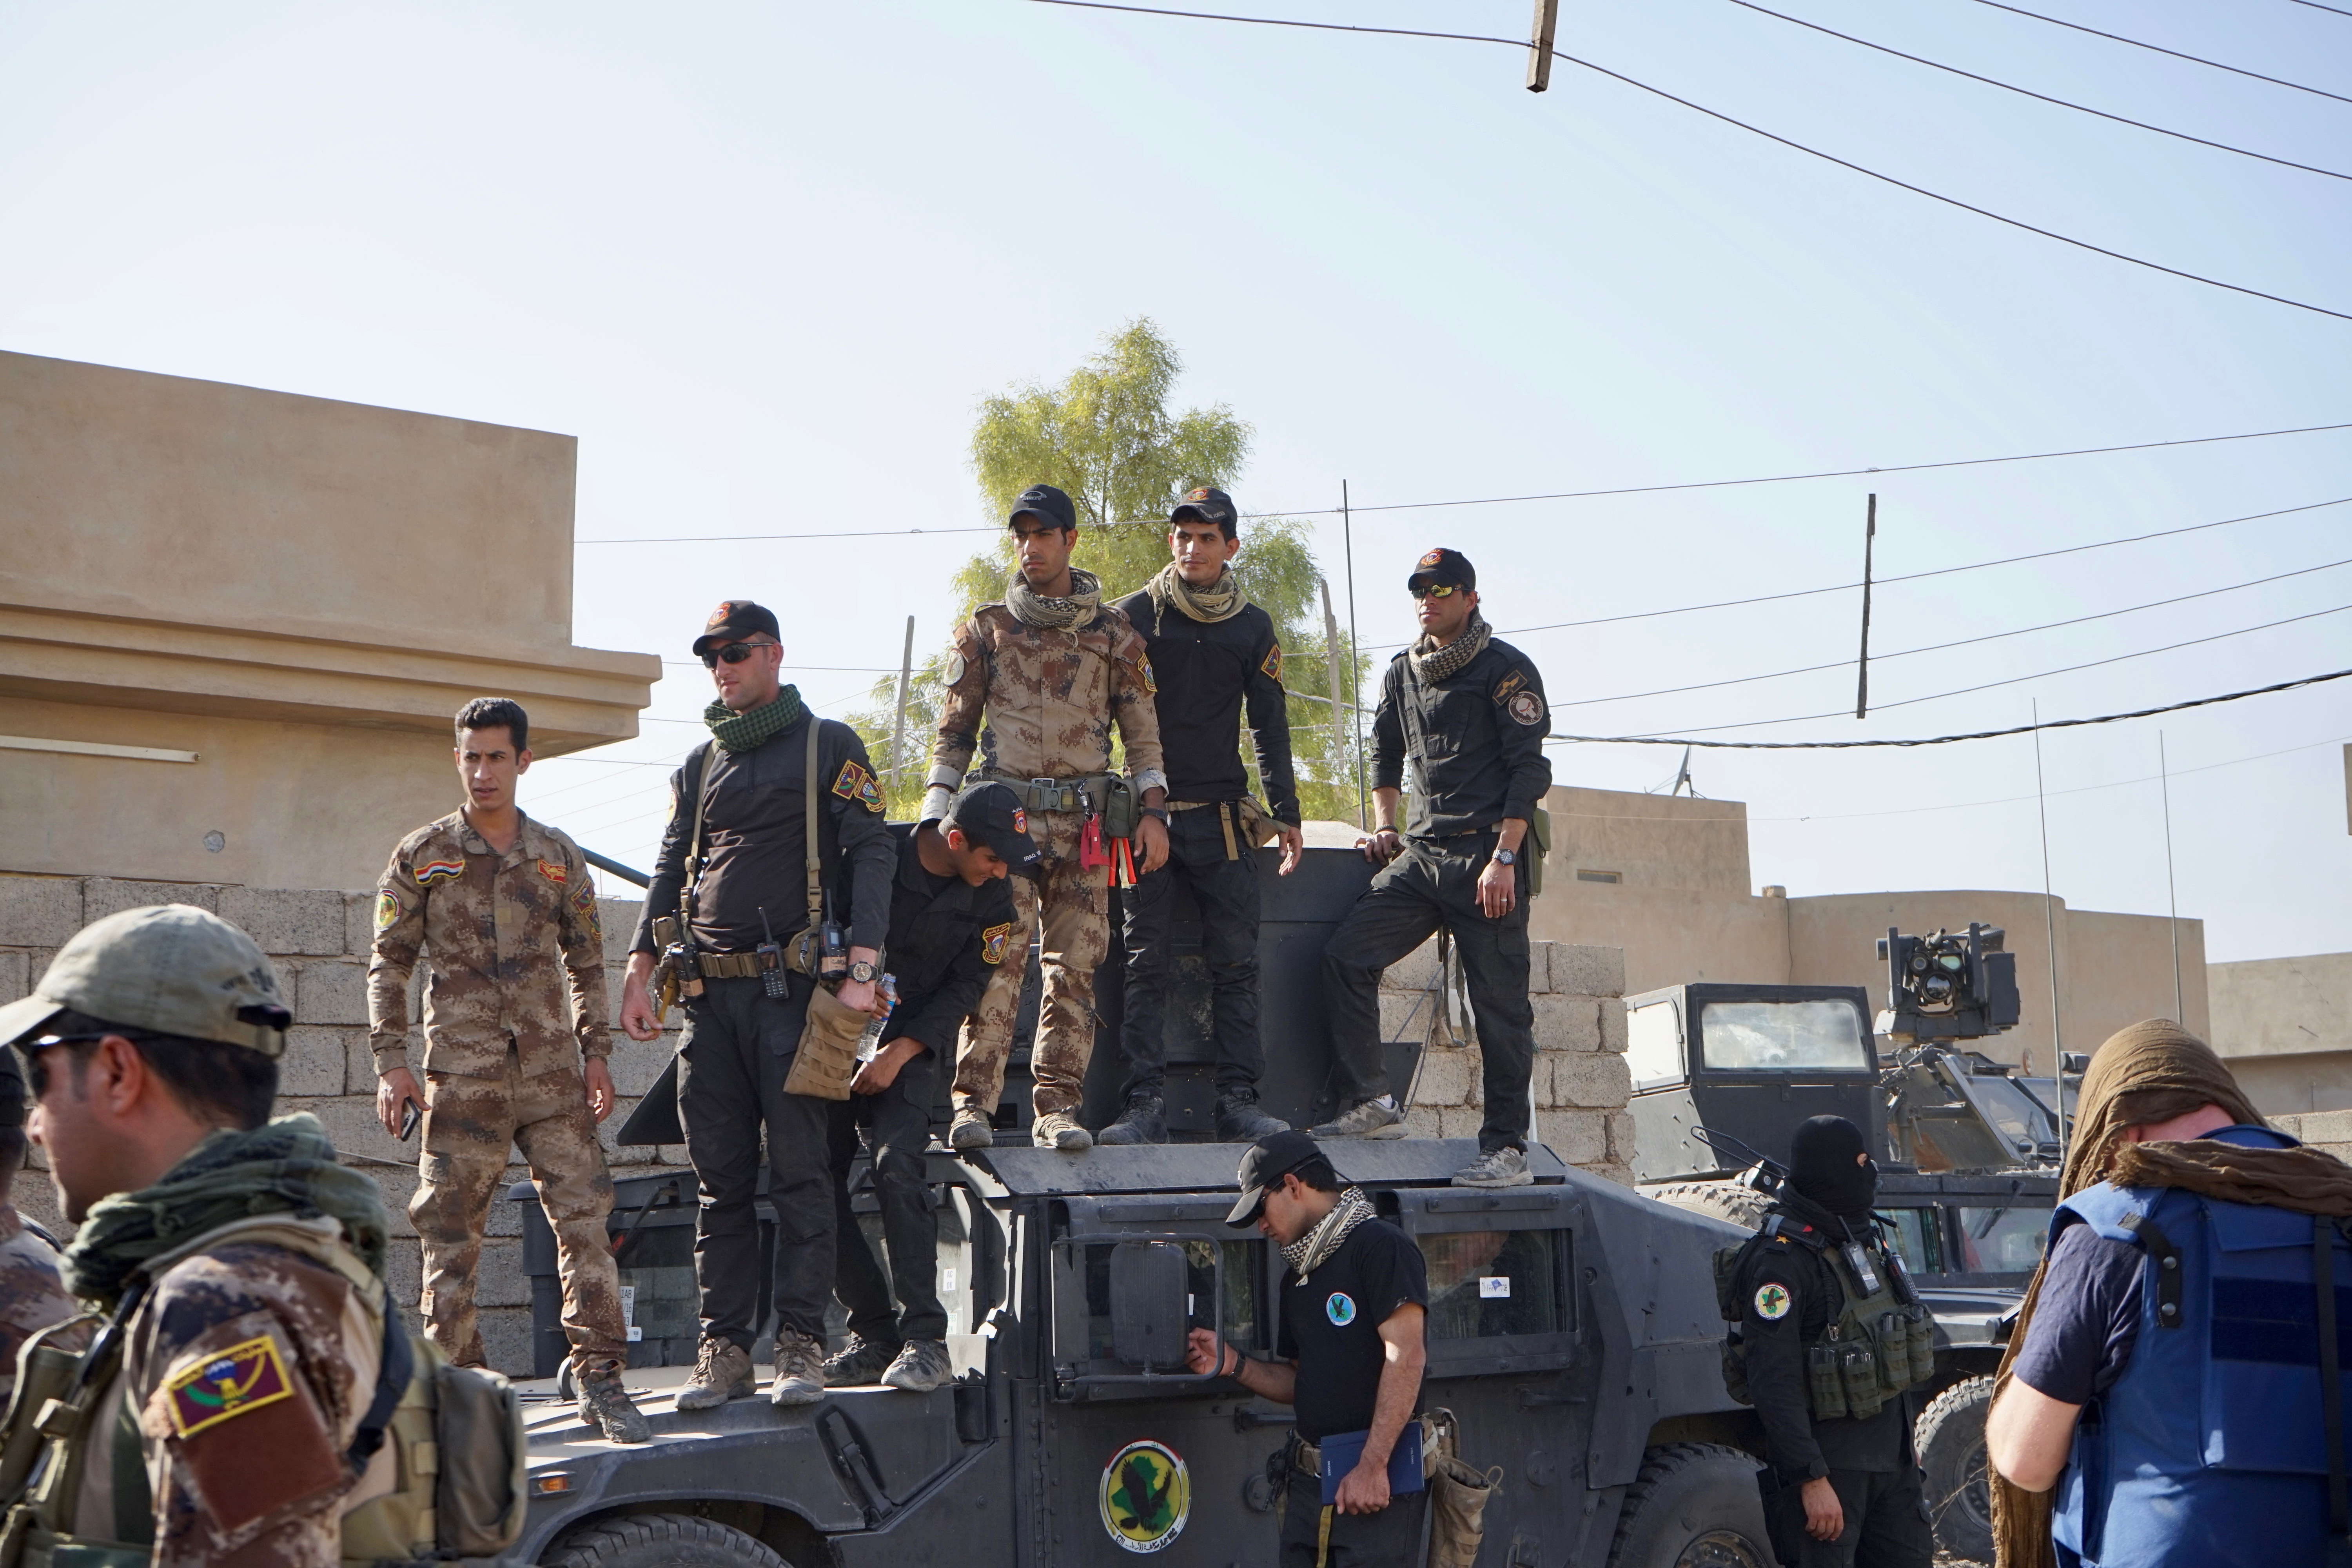 Iraqi Special Forces and soldiers from the Golden Division listen to their commander, General Talib Shaghati, congratulate his officers on fending off a counter-attack from IS militants on the outskirts of Mosul, in Iraq. (J. Dettmer/VOA)